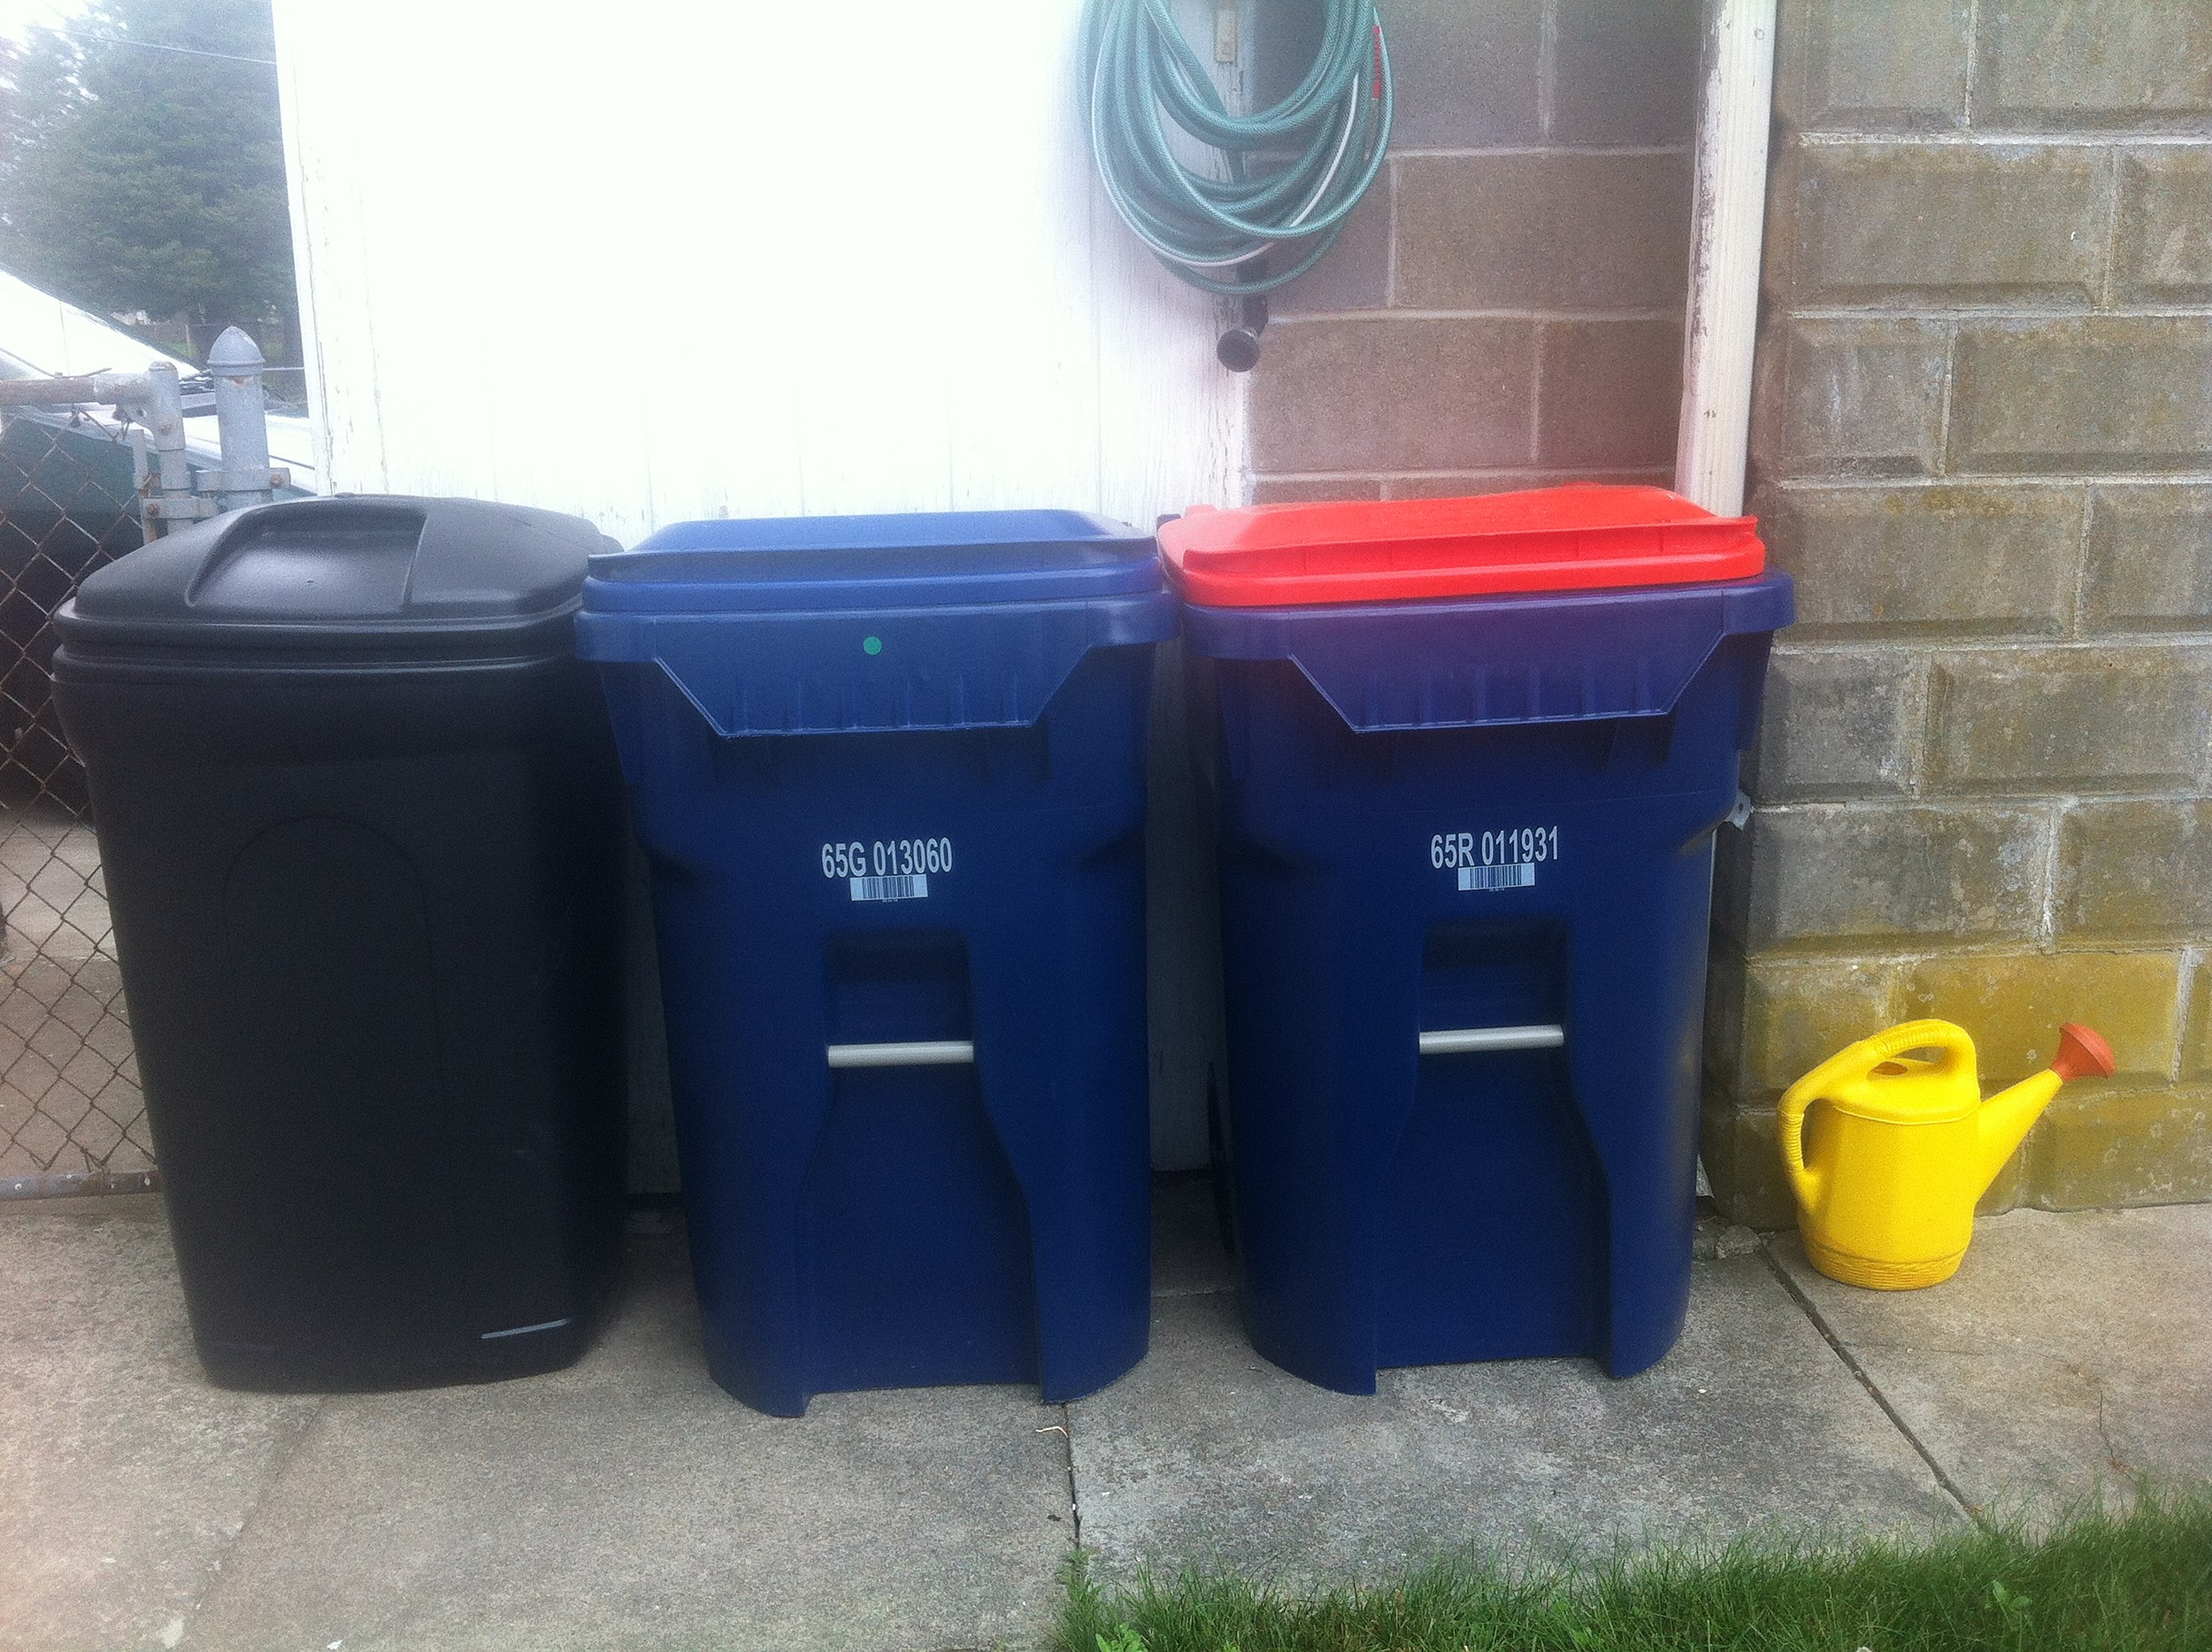 New Bedford trash and recycling bins